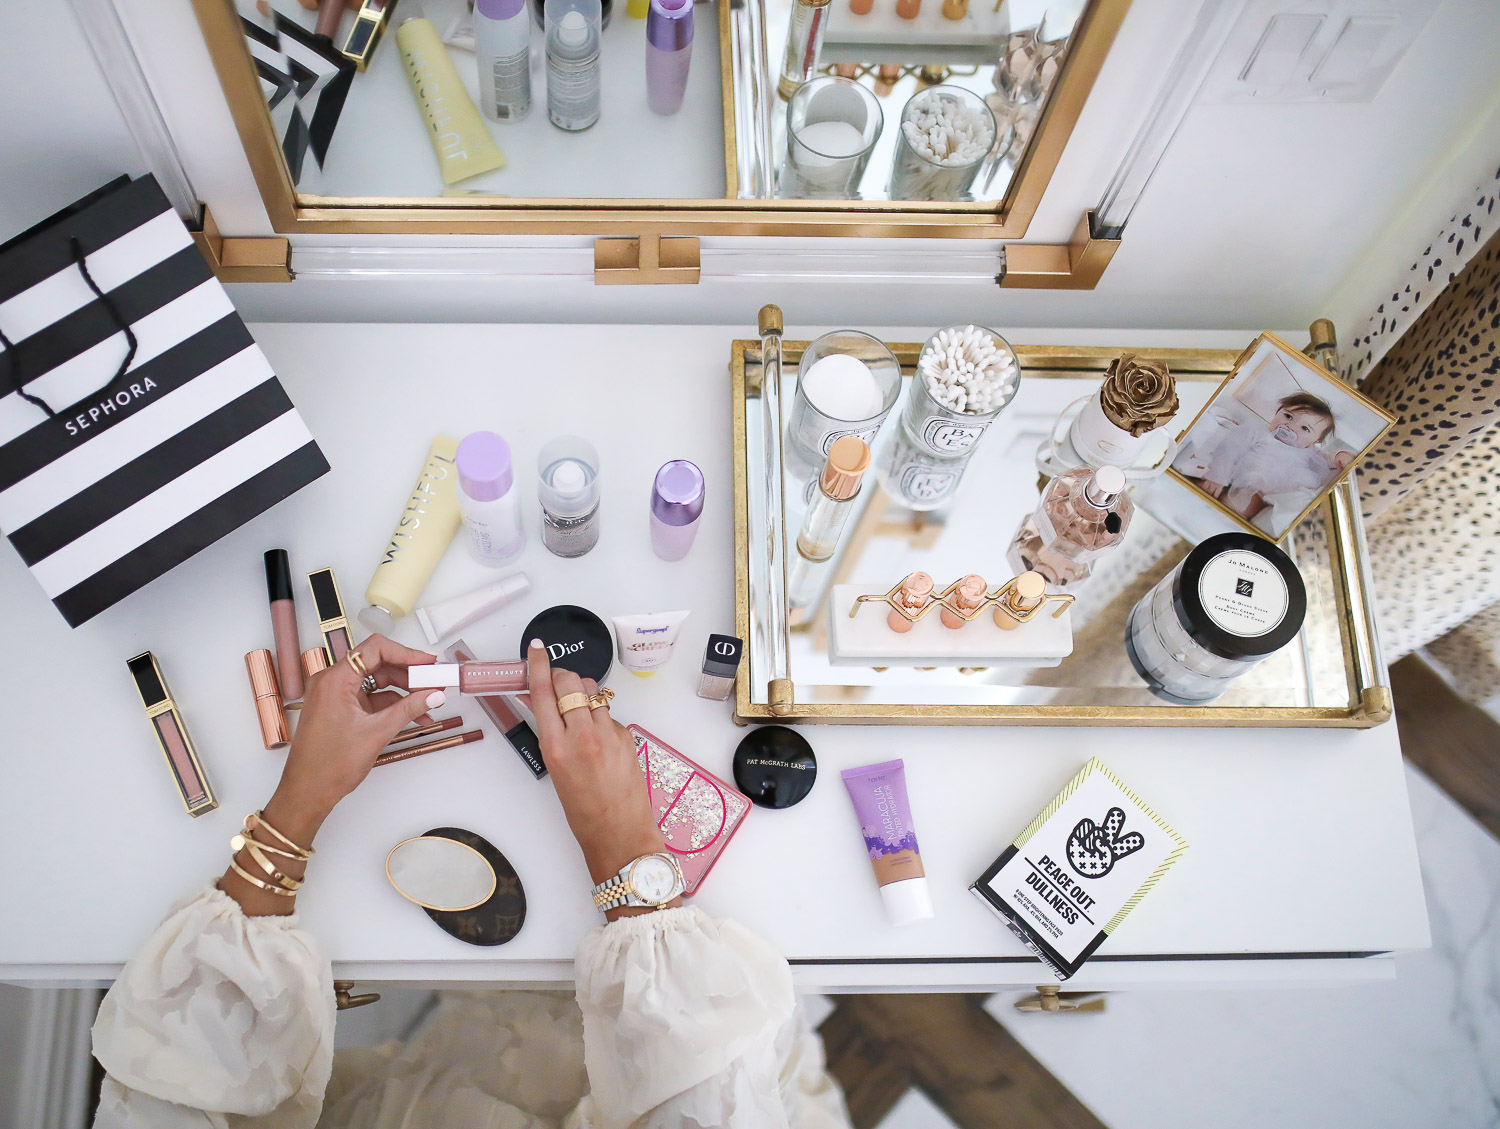 Sephora Haul spring 2020, beauty bloggers, Tatcha Liquid Silk Canvas review, lawless makeup review, emily gemma | Sephora Favorites by popular US beauty blog, The Sweetest Thing: image of a vanity with a Sephora bag and various Sephora makeup products on it.